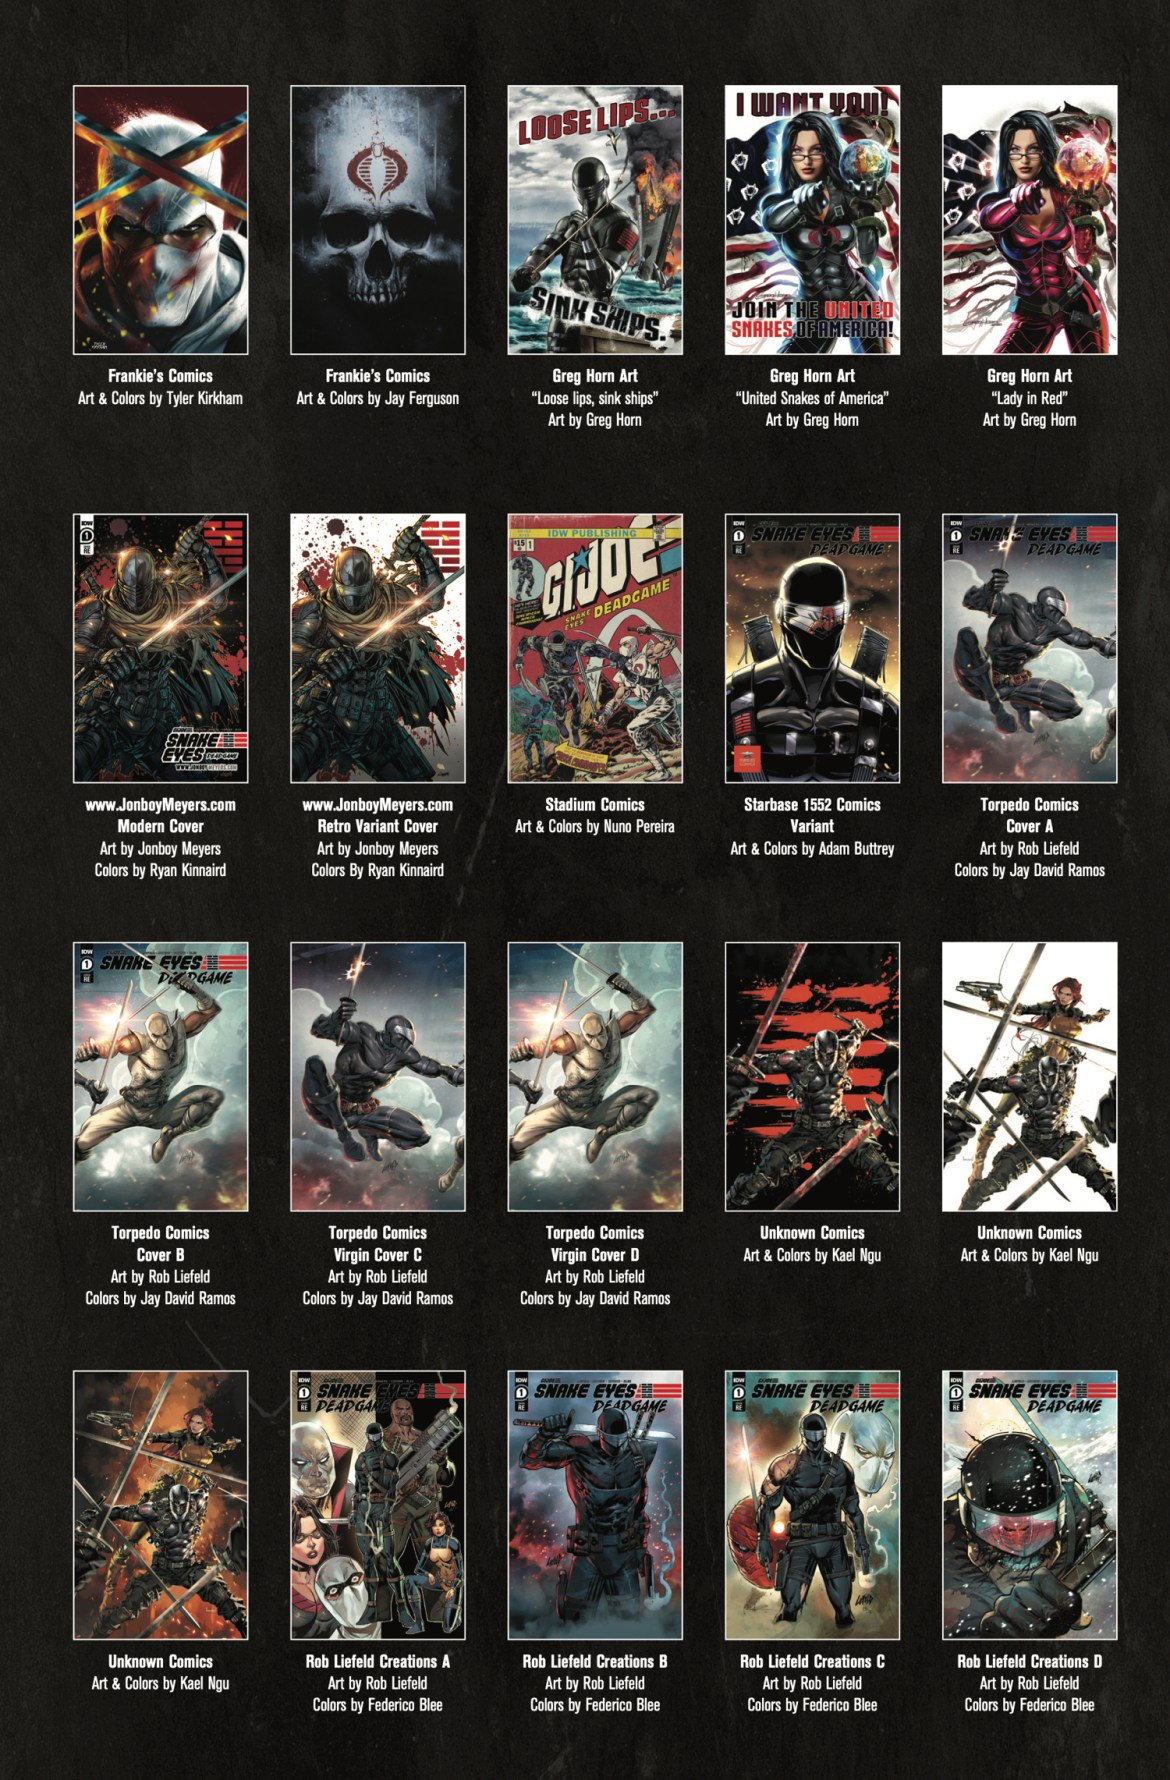 8cc5ef16-992e-4bdf-b1f8-1aa175309d79 IDW's SNAKE EYES: DEADGAME will feature 36 exclusive covers